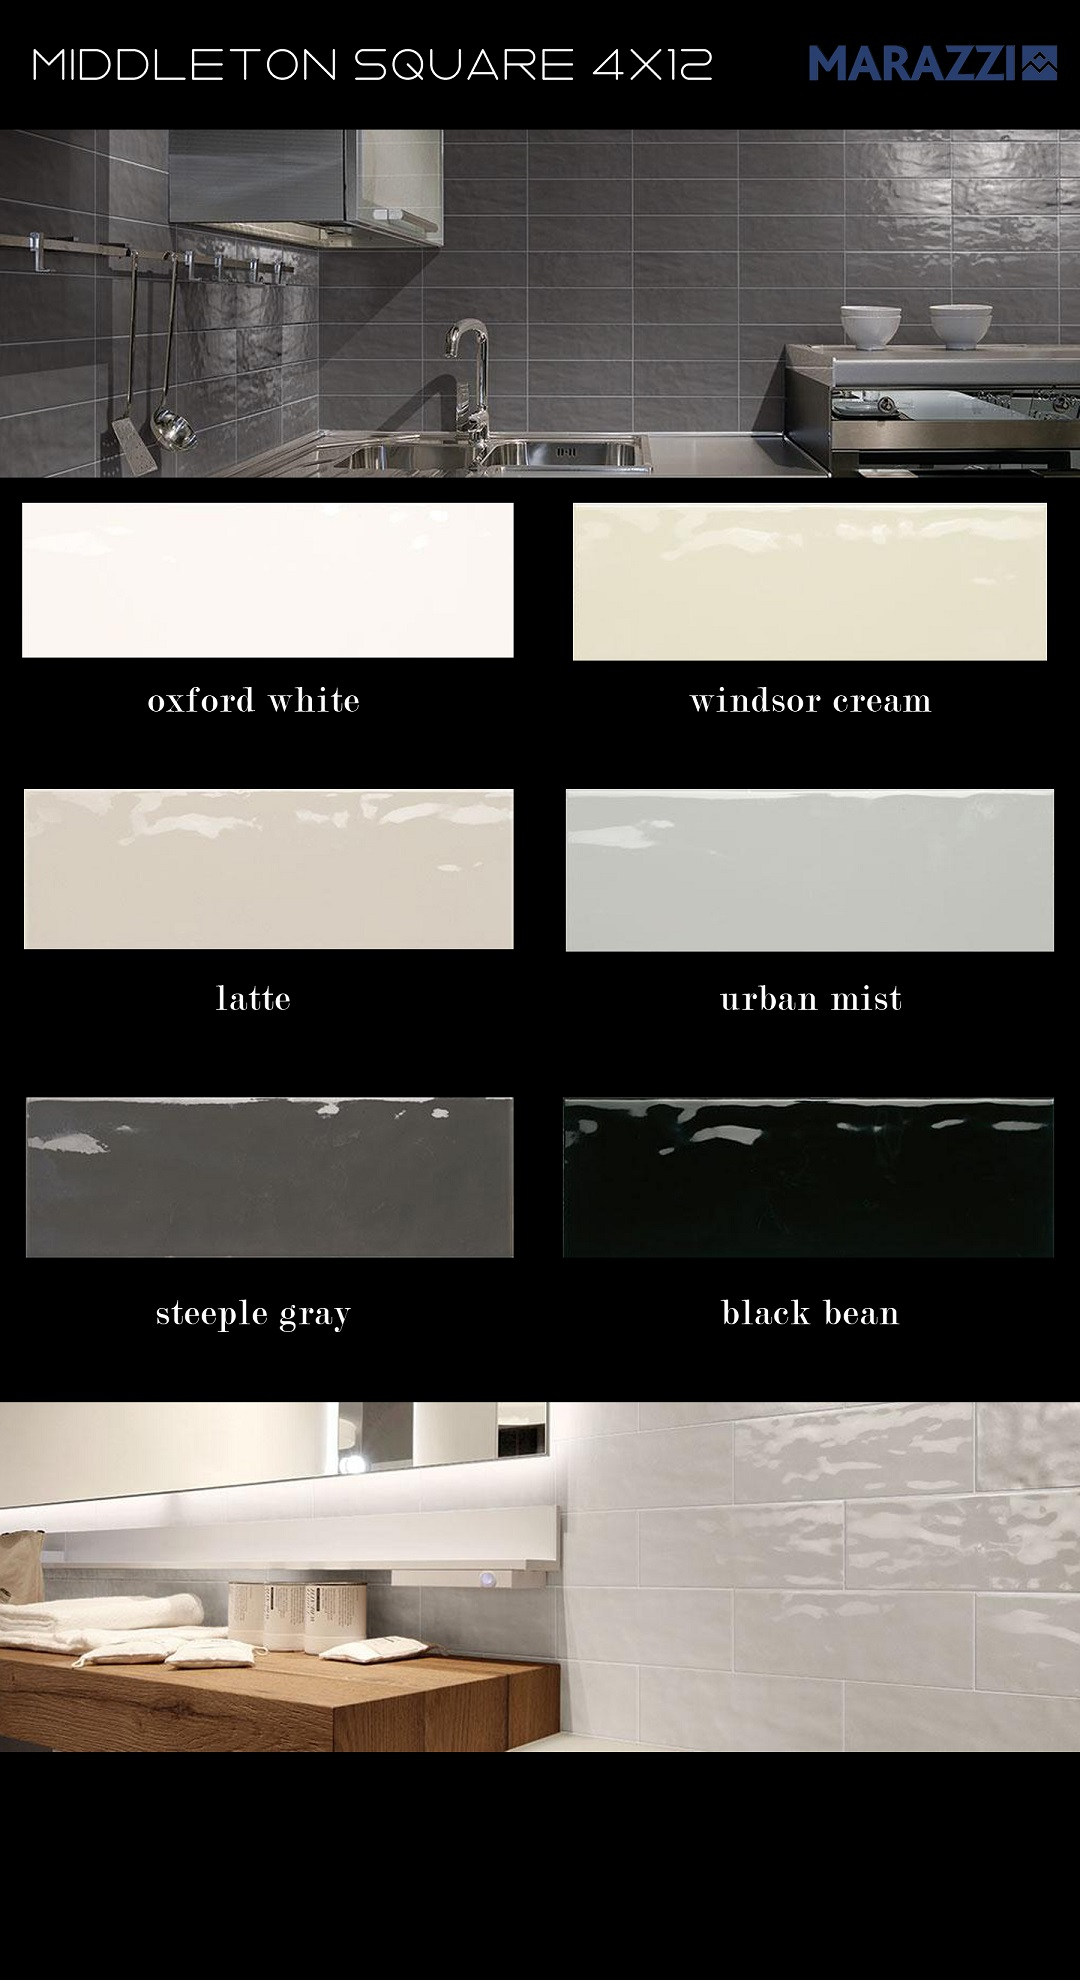 Marazzi hand mold contemporary ceramic wall tile rectangle subway 4x12 oxford white windsor cream latte urban mist steeple gray black bean